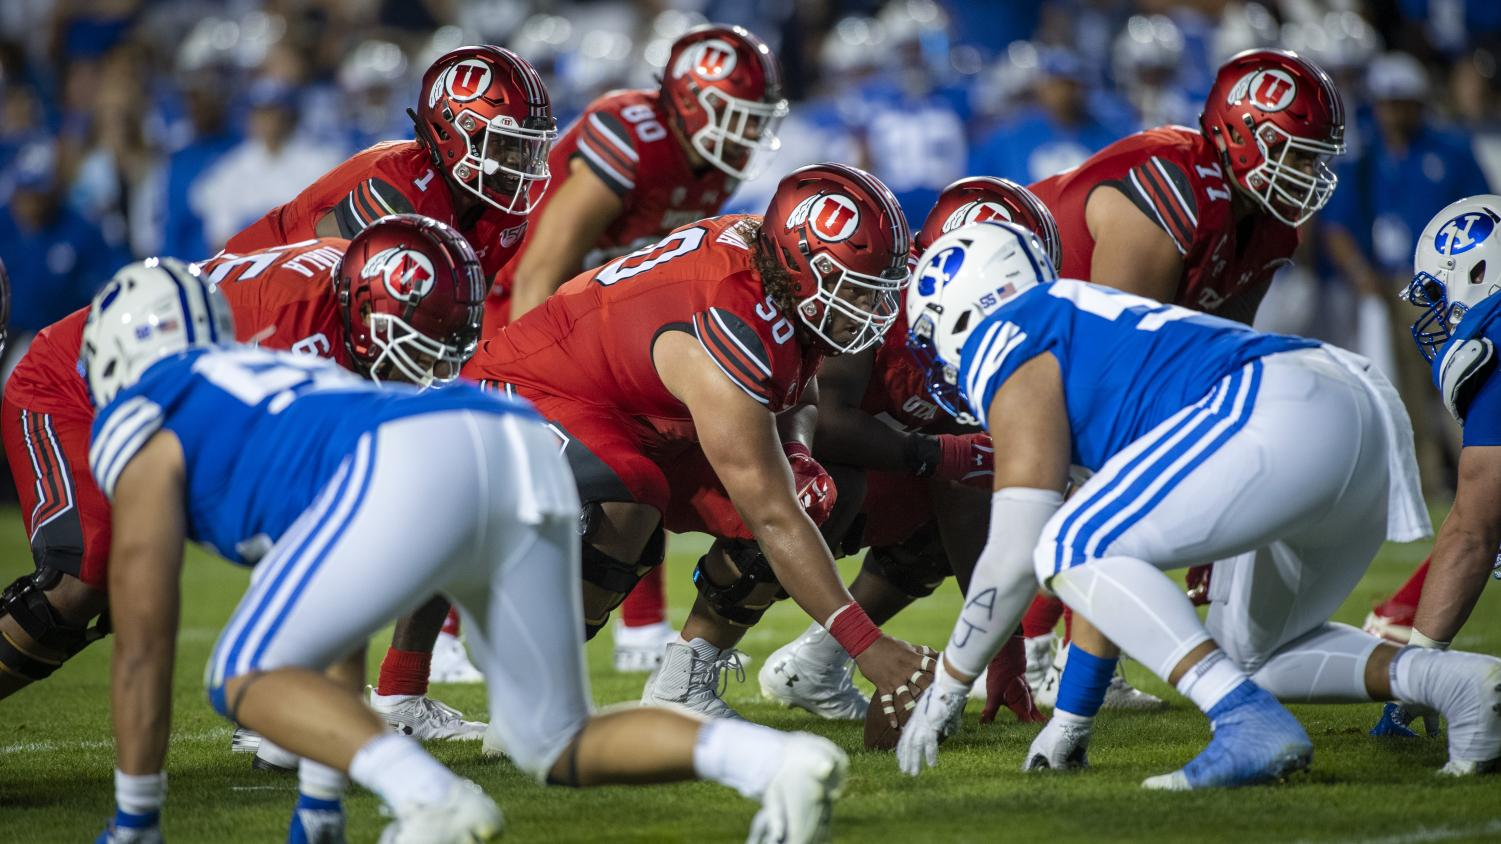 University of Utah junior offensive lineman Orlando Umana (50) snaps the ball during an NCAA Football game vs. Brigham Young University at LaVell Edwards Stadium in Provo, Utah on Thursday, Aug. 29, 2019. (Photo by Kiffer Creveling | The Daily Utah Chronicle)